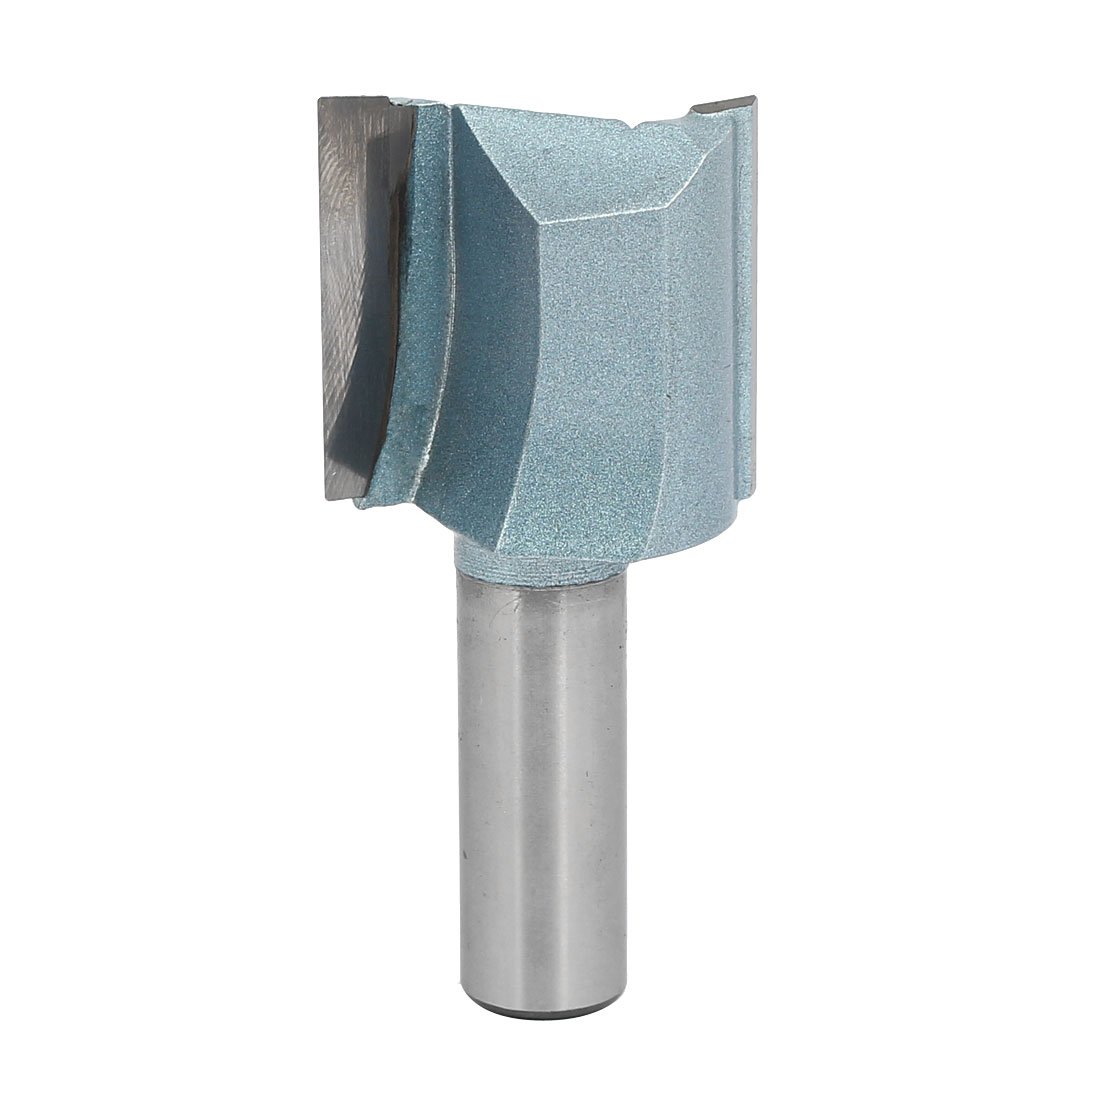 1-3/8-Inch Dia Carbide Double Flute Straight Router Bit with 1-3/16-Inch Length 1/2-Inch Shank